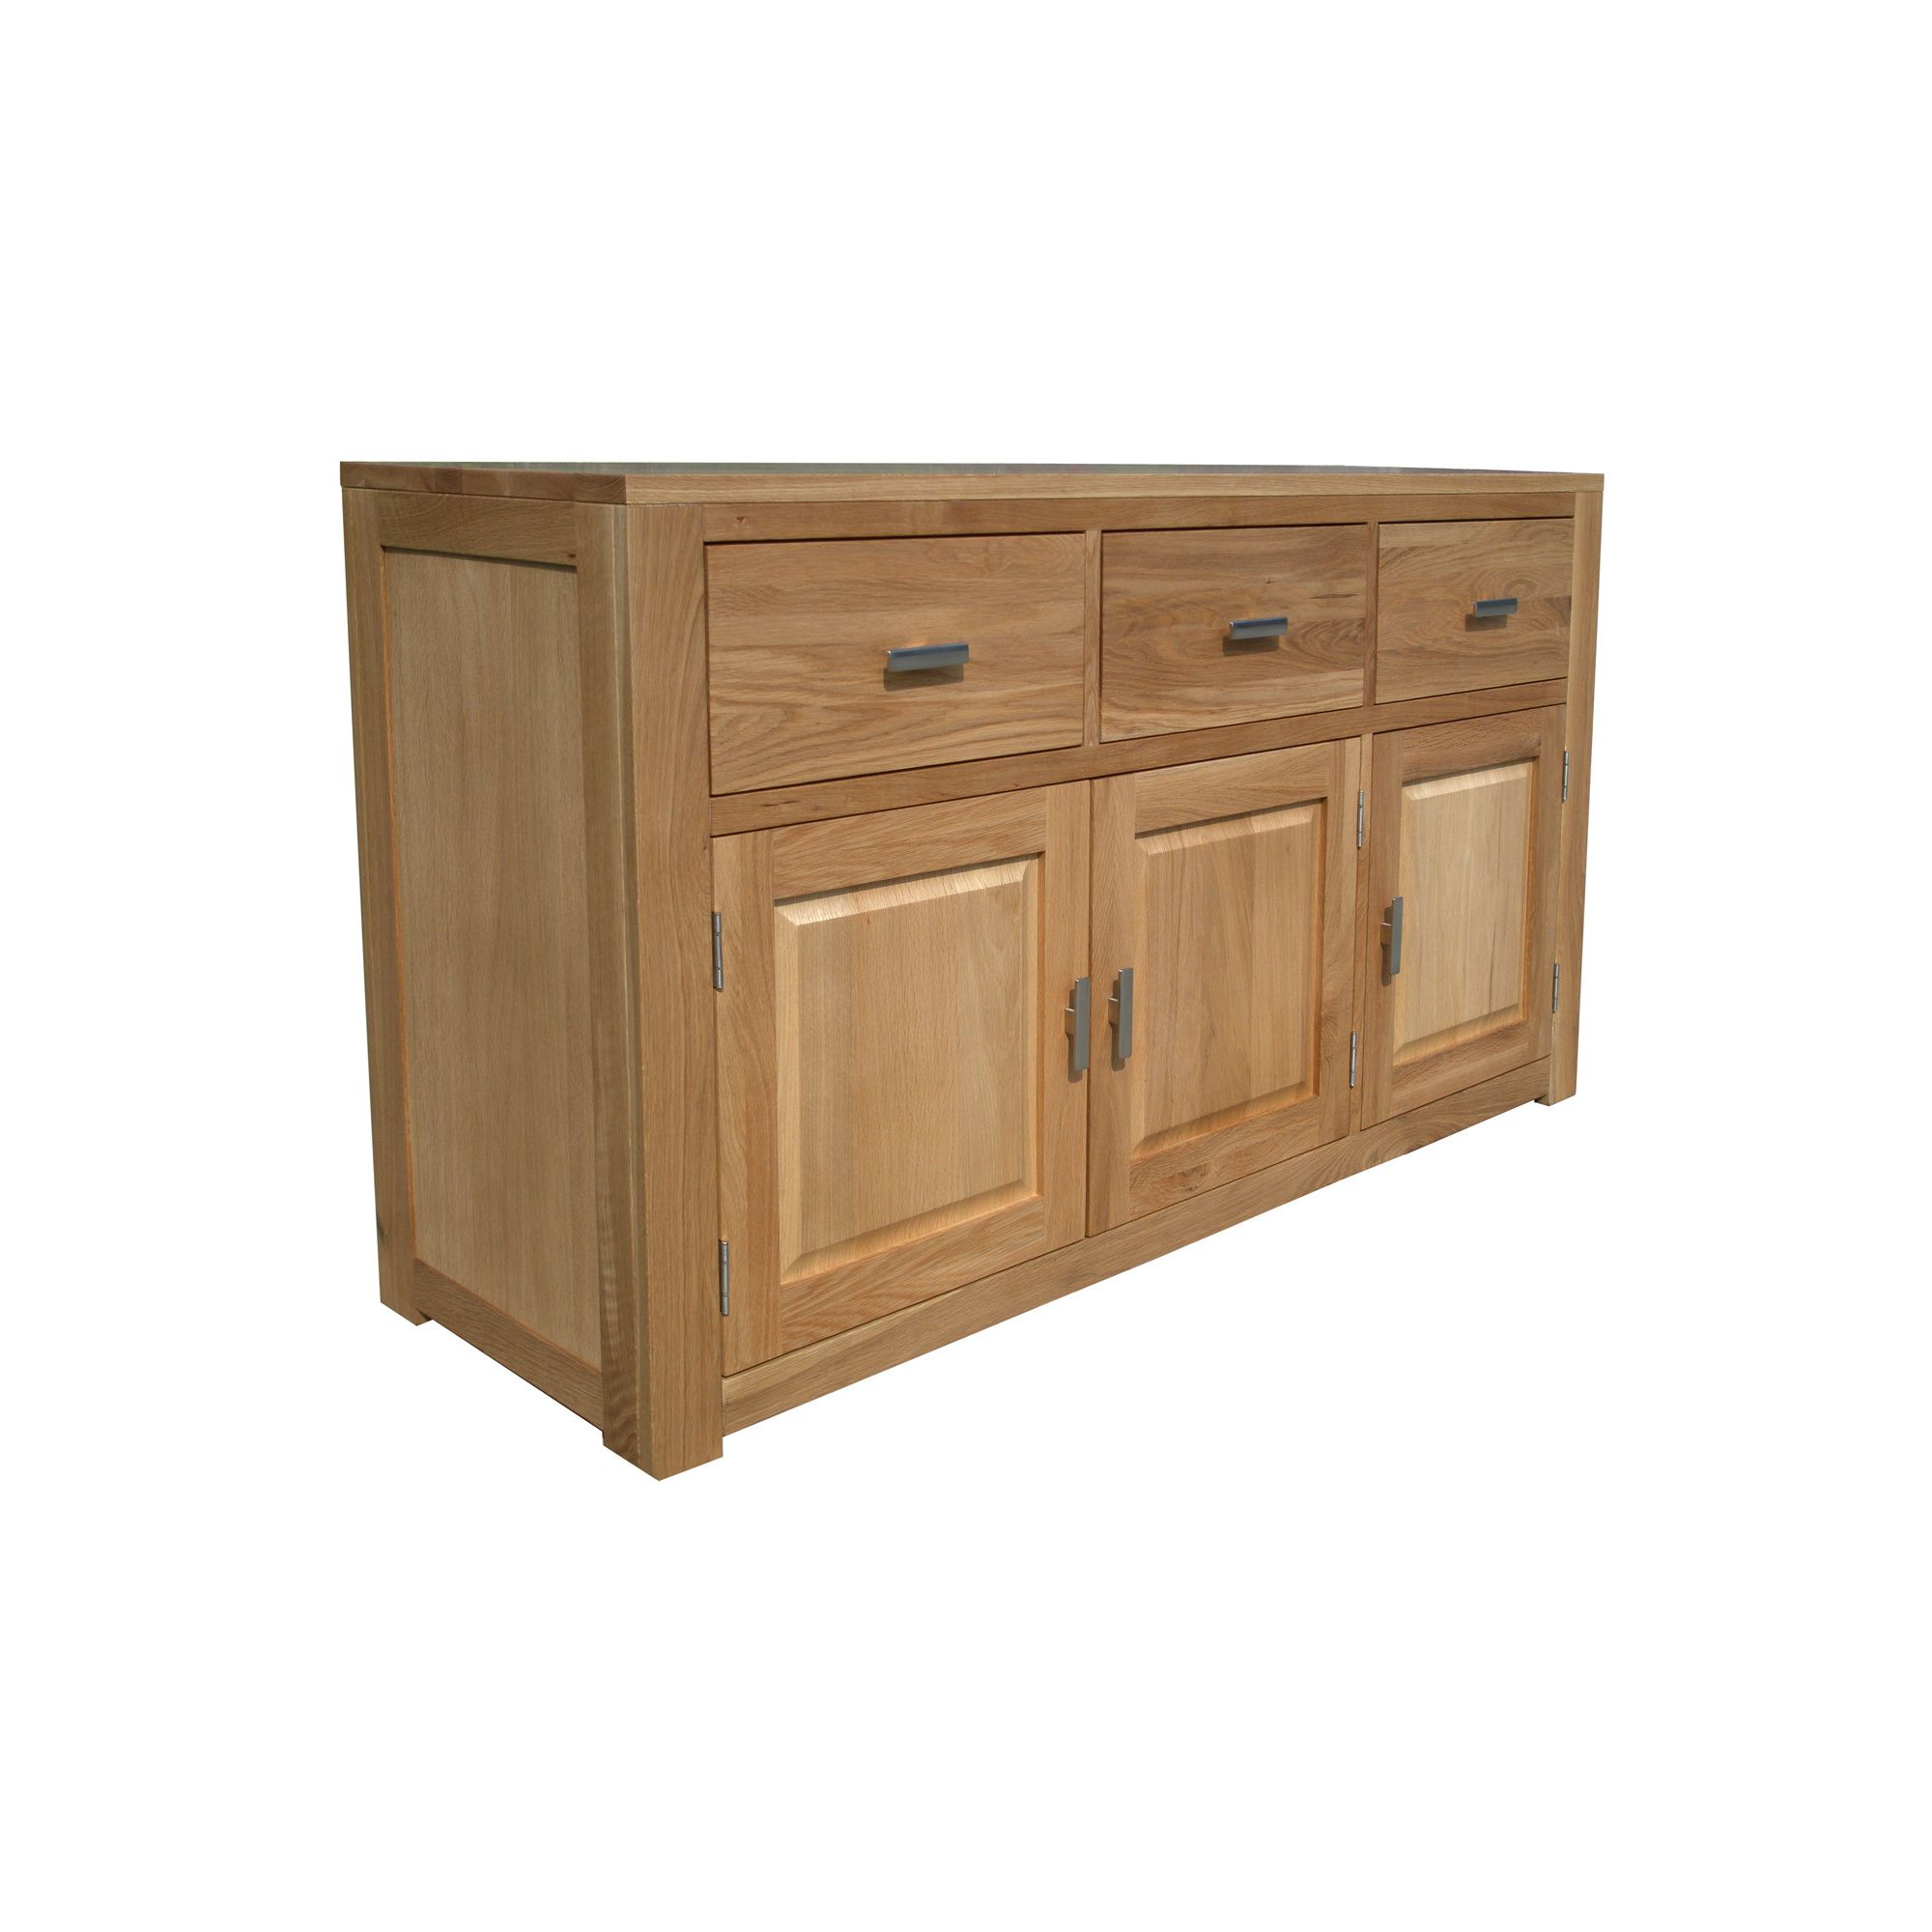 Home Zone Furniture Churchill Oak 2010 Three Drawer / Three Door Sideboard in Natural Oak at Tesco Direct